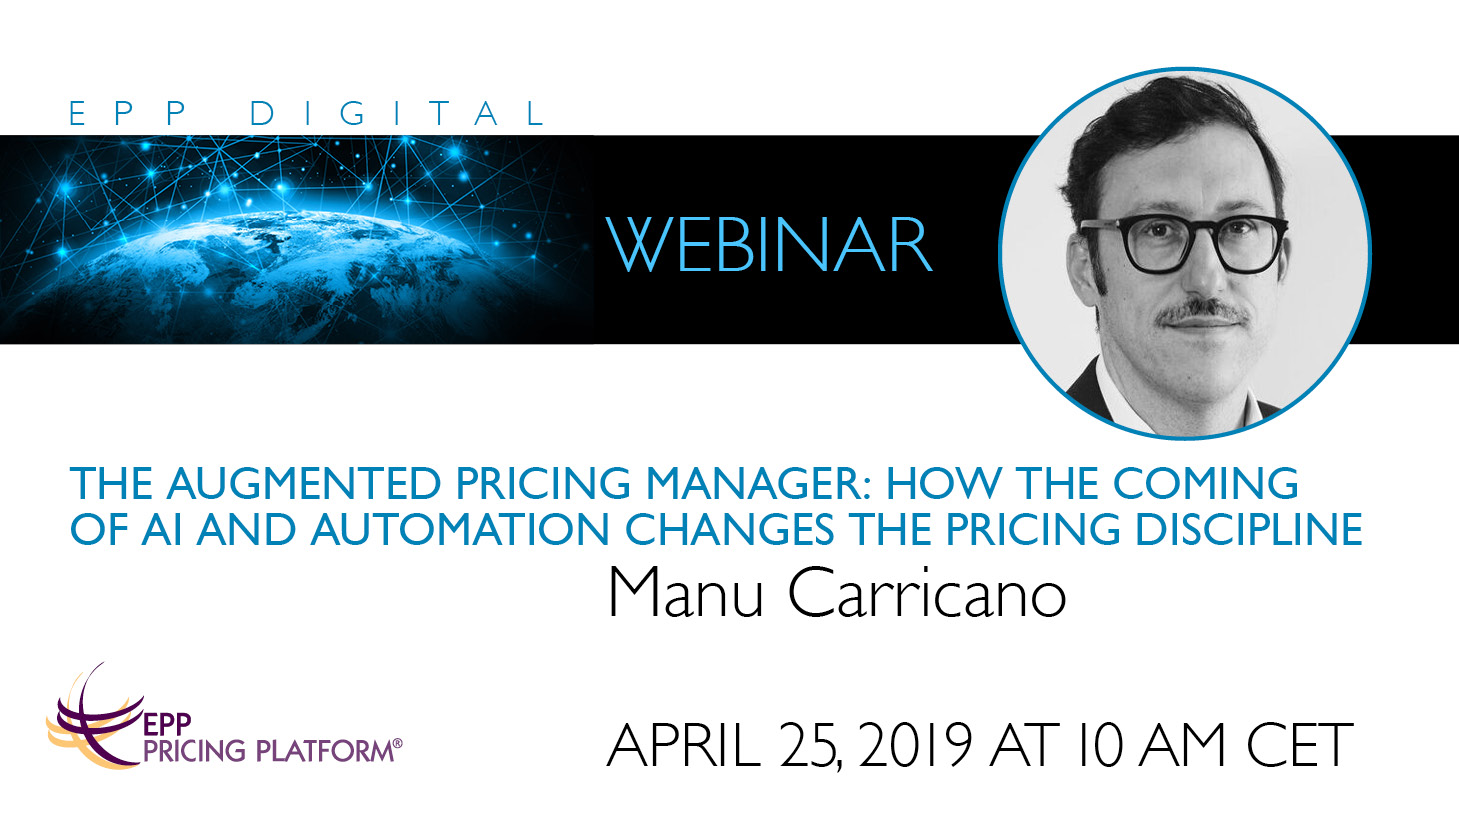 The Augmented Pricing Manager: How the coming of AI and automation changes the pricing discipline